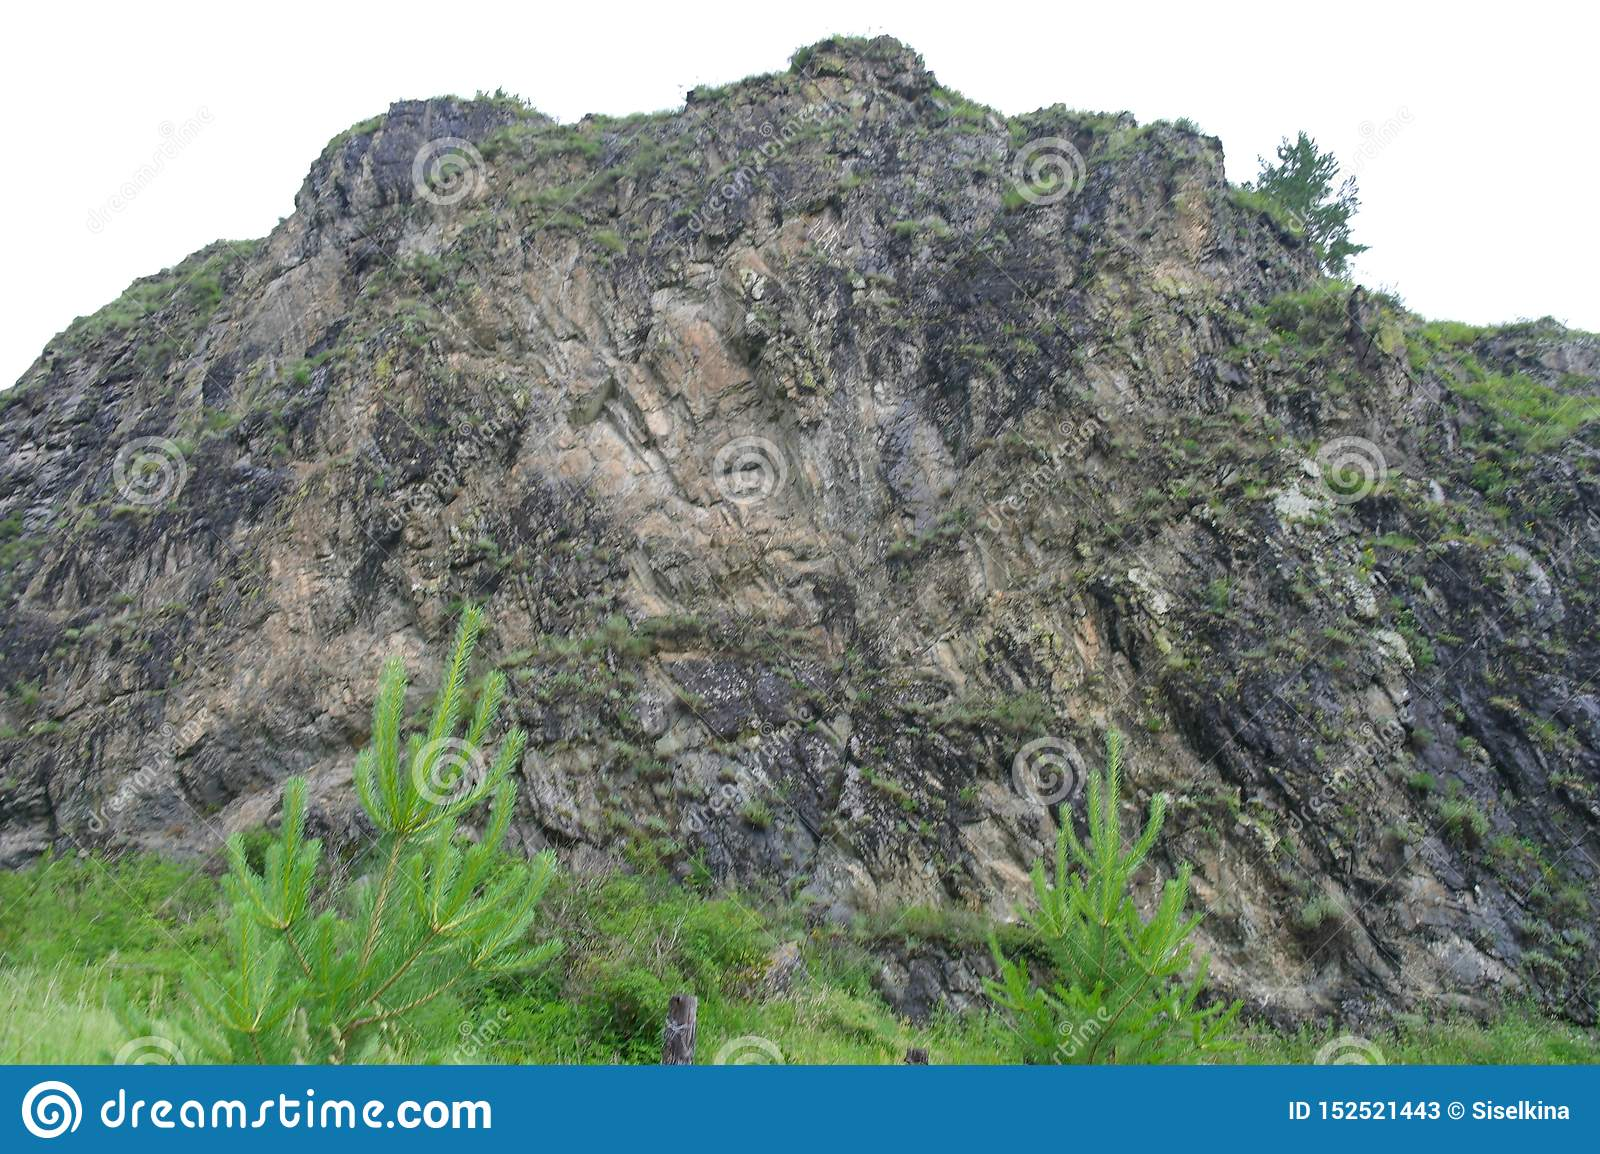 Centuries-old mountain range, rock covered with greenery.